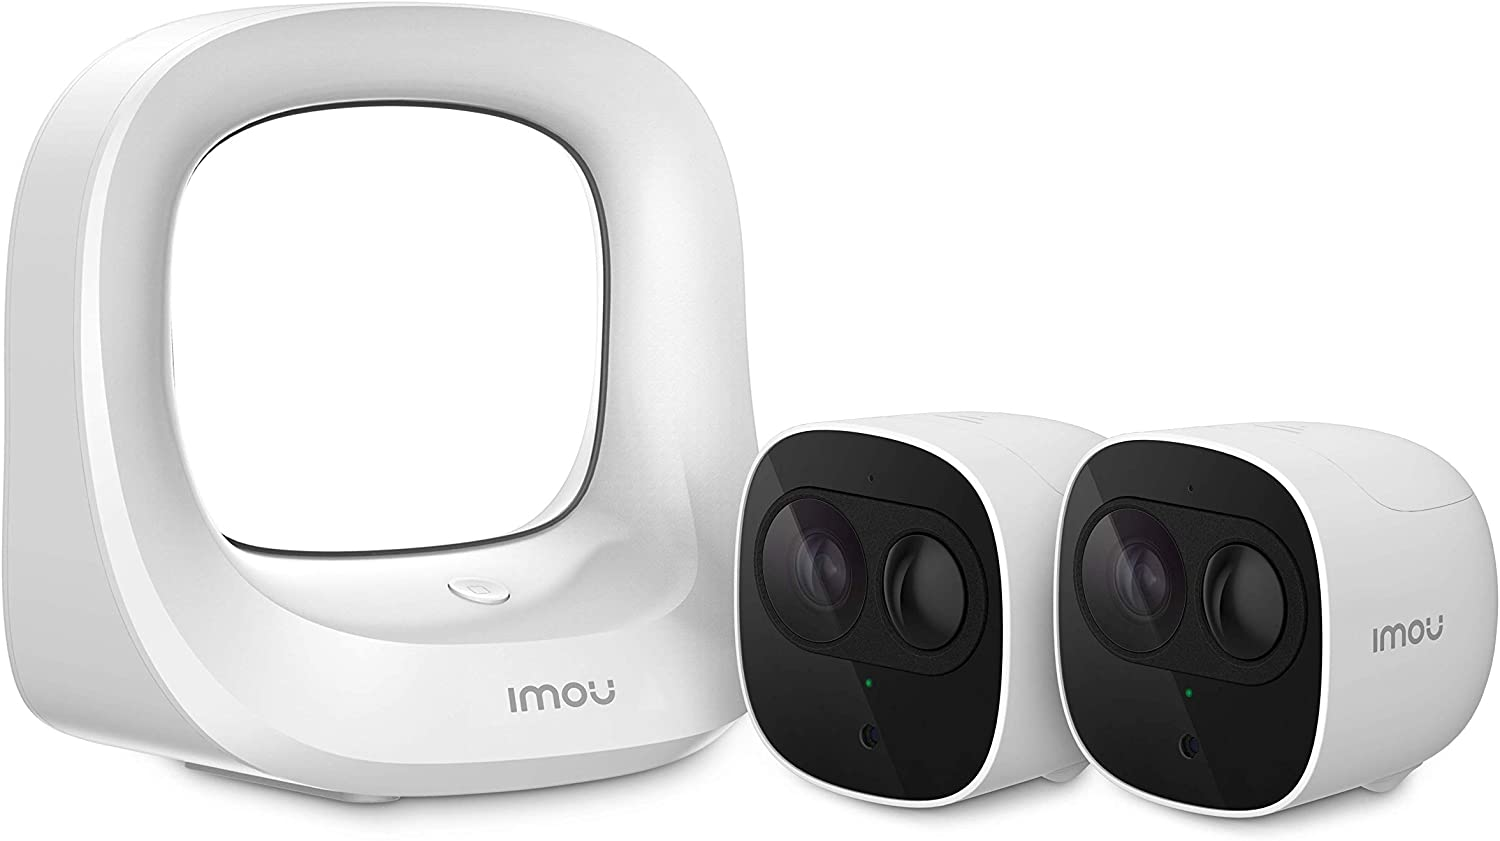 Imou Cell Pro: Outdoor Smart Security Camera, Wire-Free, 1080p, Rechargeable Battery, PIR Detection, Night Vision, IP65 Weatherproof, Diversified Cloud Storage (Includes 1 HUB + 2 Security Cameras)